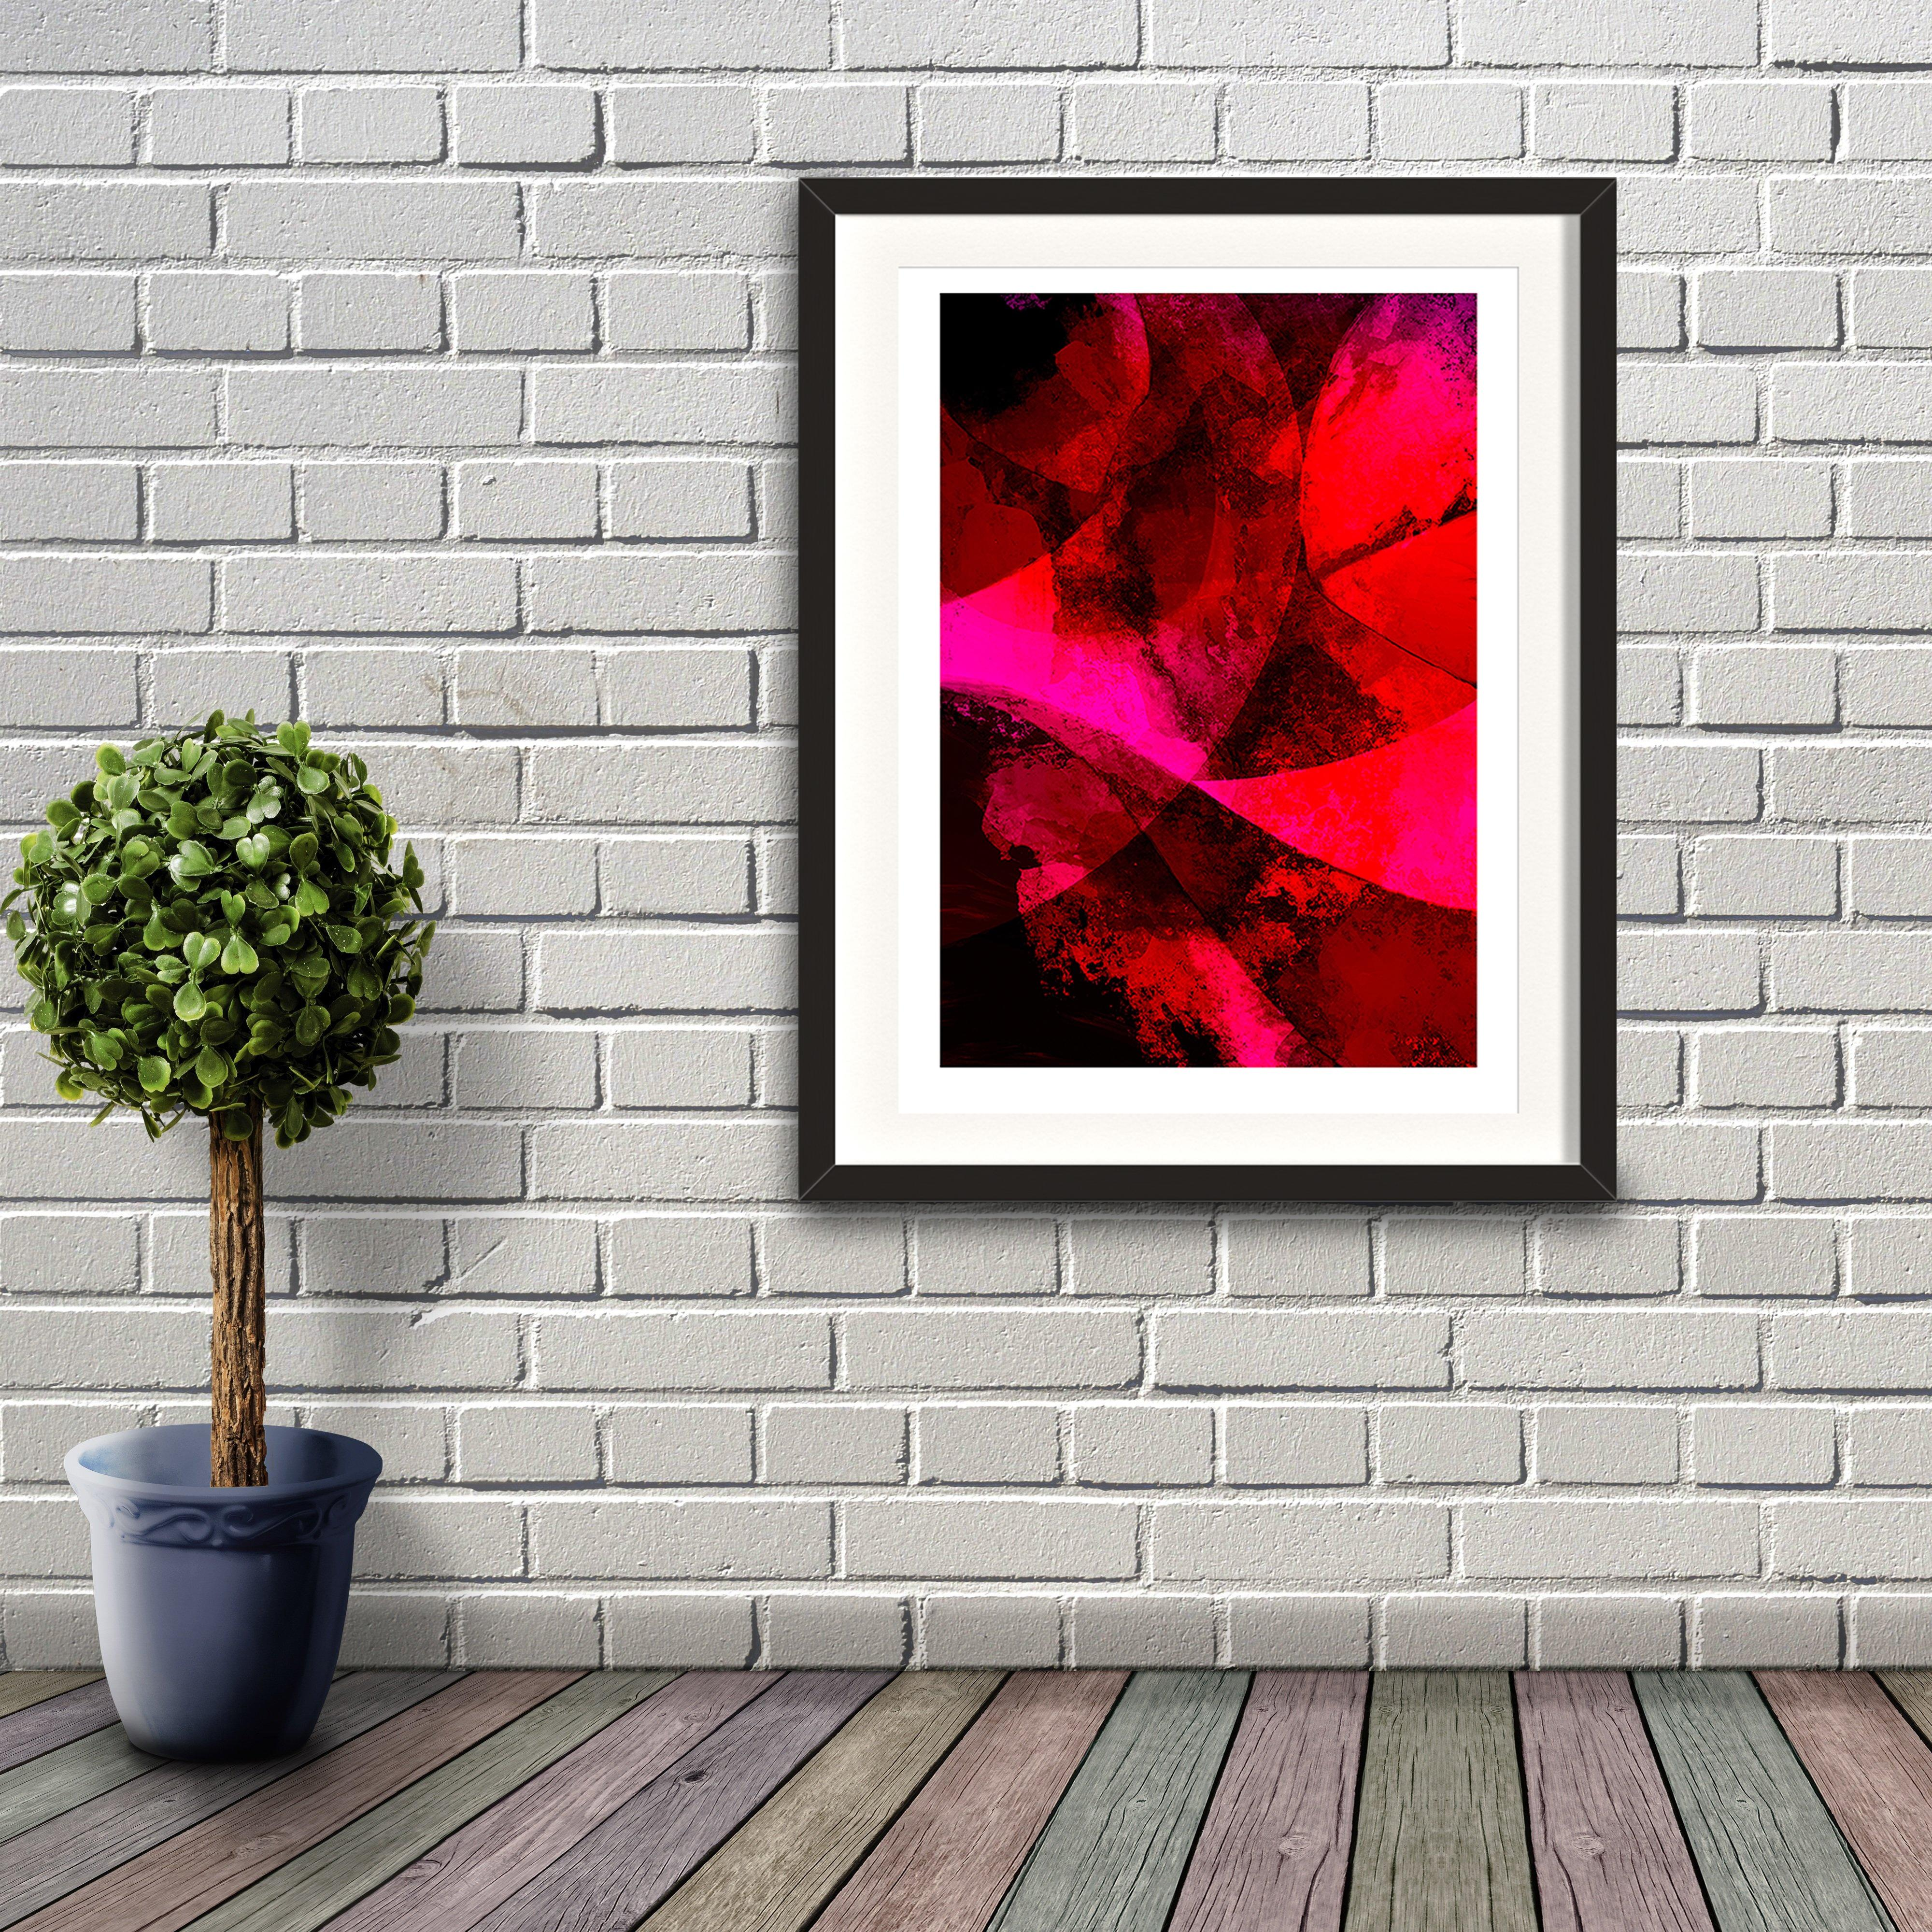 A digital painting by Lily Bourne printed on eco fine art paper titled Red Passion From Within showing a series of curved lines and textures colour red, bright pink and black. Artwork shown framed on a brickwall.